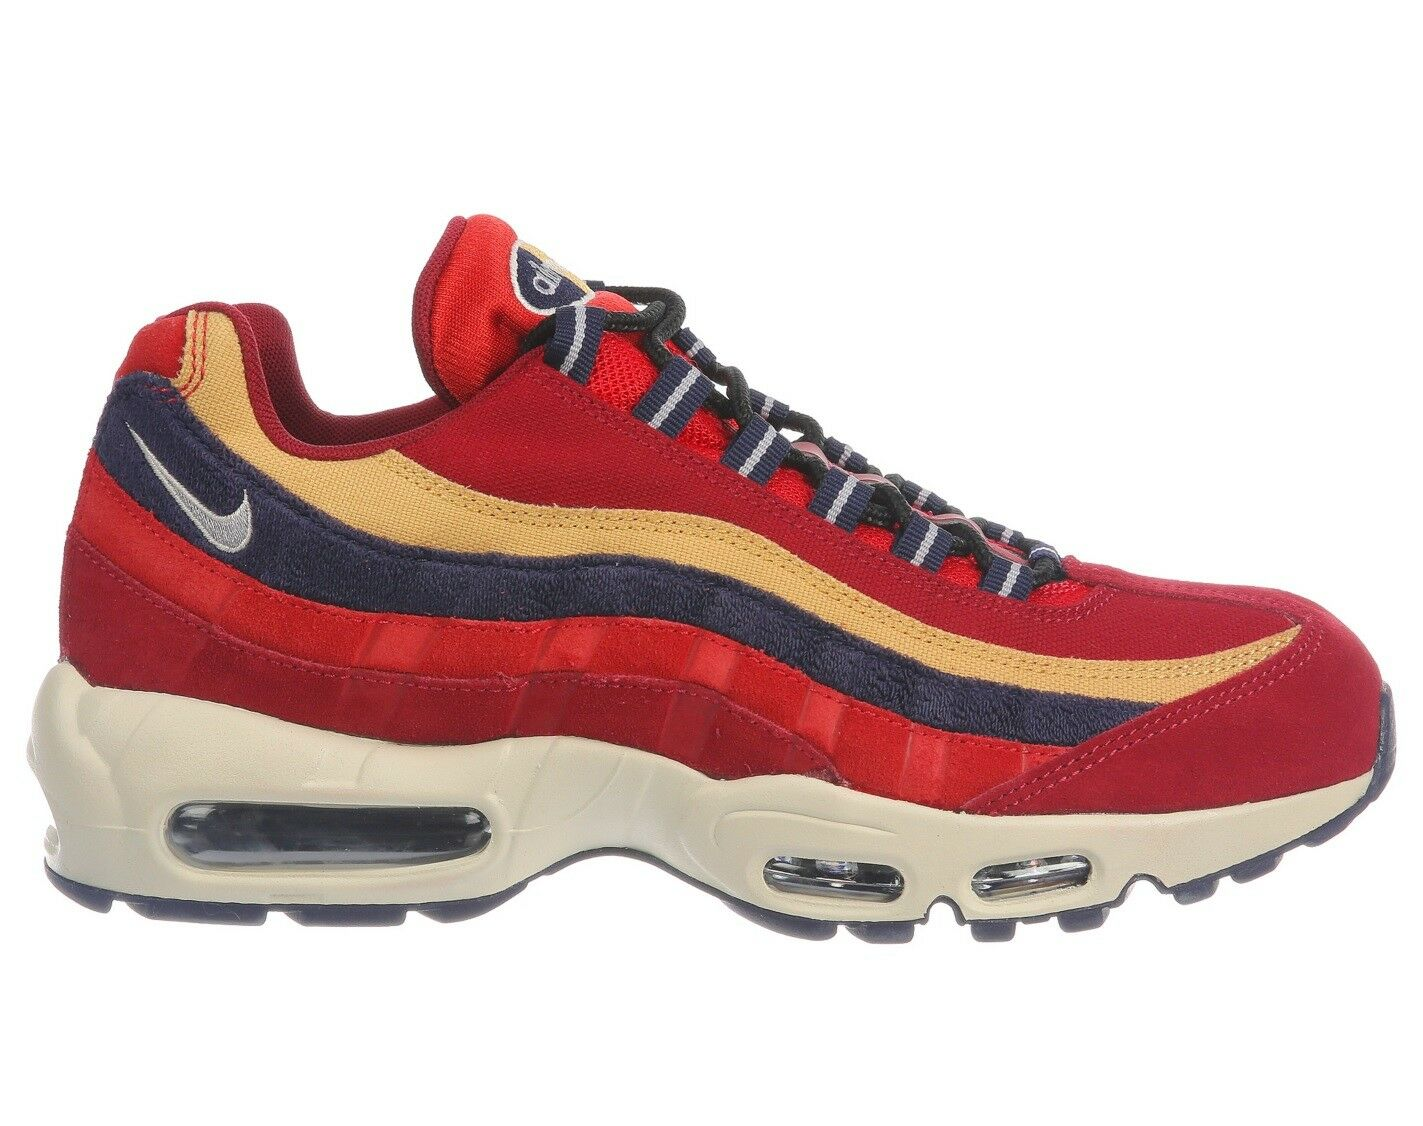 Nike Air Max 95 Premium Mens 538416-603 Red Purple Wheat Running Shoes Size 9.5